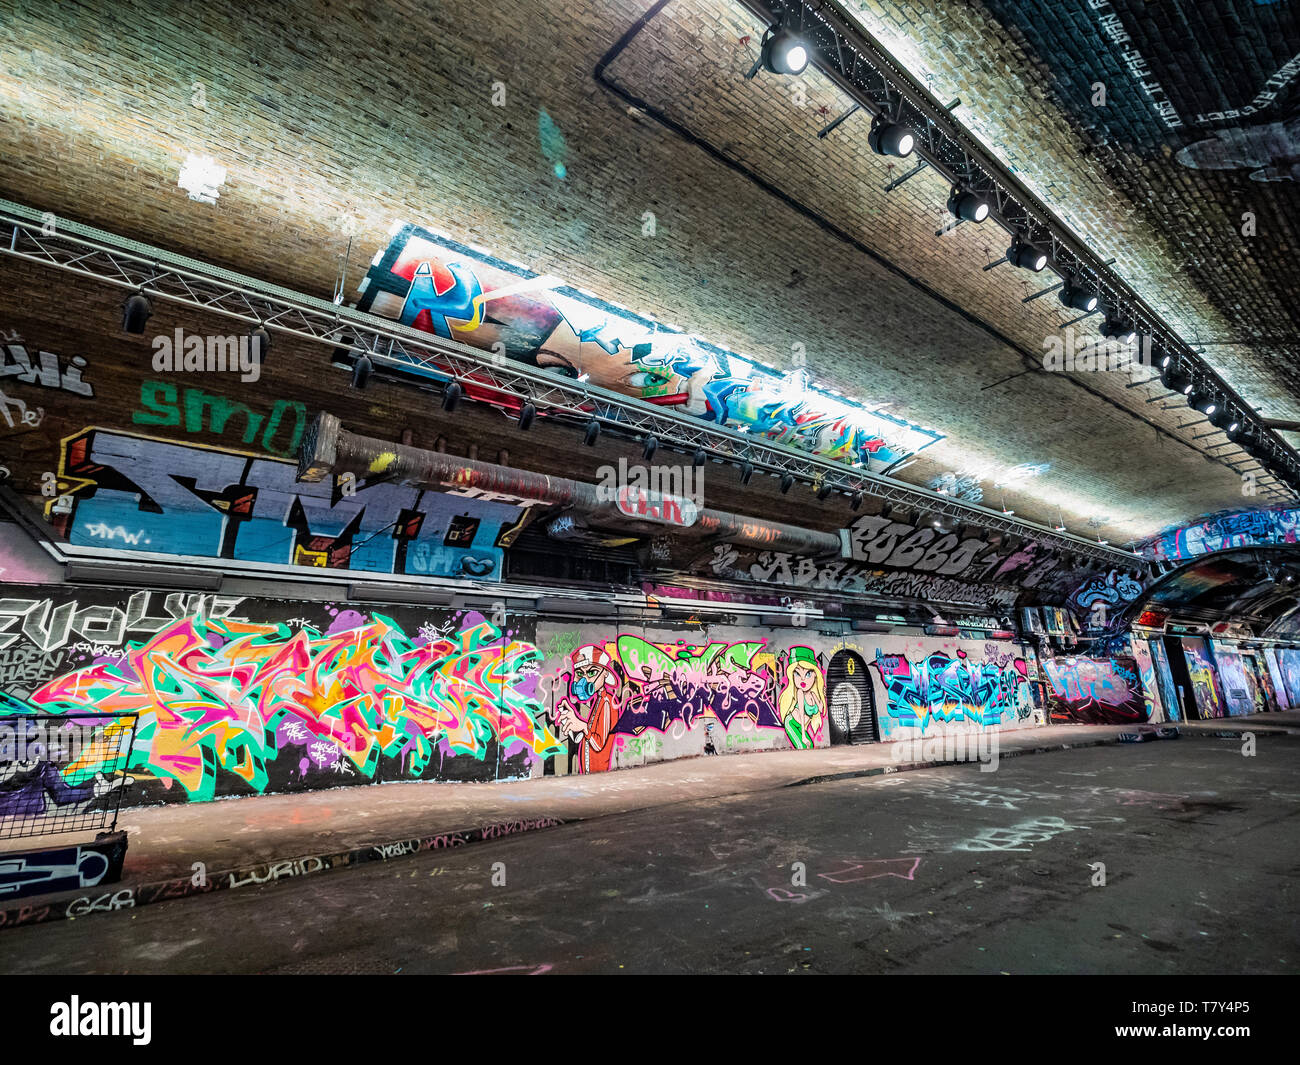 The Banksy Tunnel, ( Leake St Tunnel or Leake Street Arches ) legal Graffiti venue under Waterloo train station, London, UK. - Stock Image